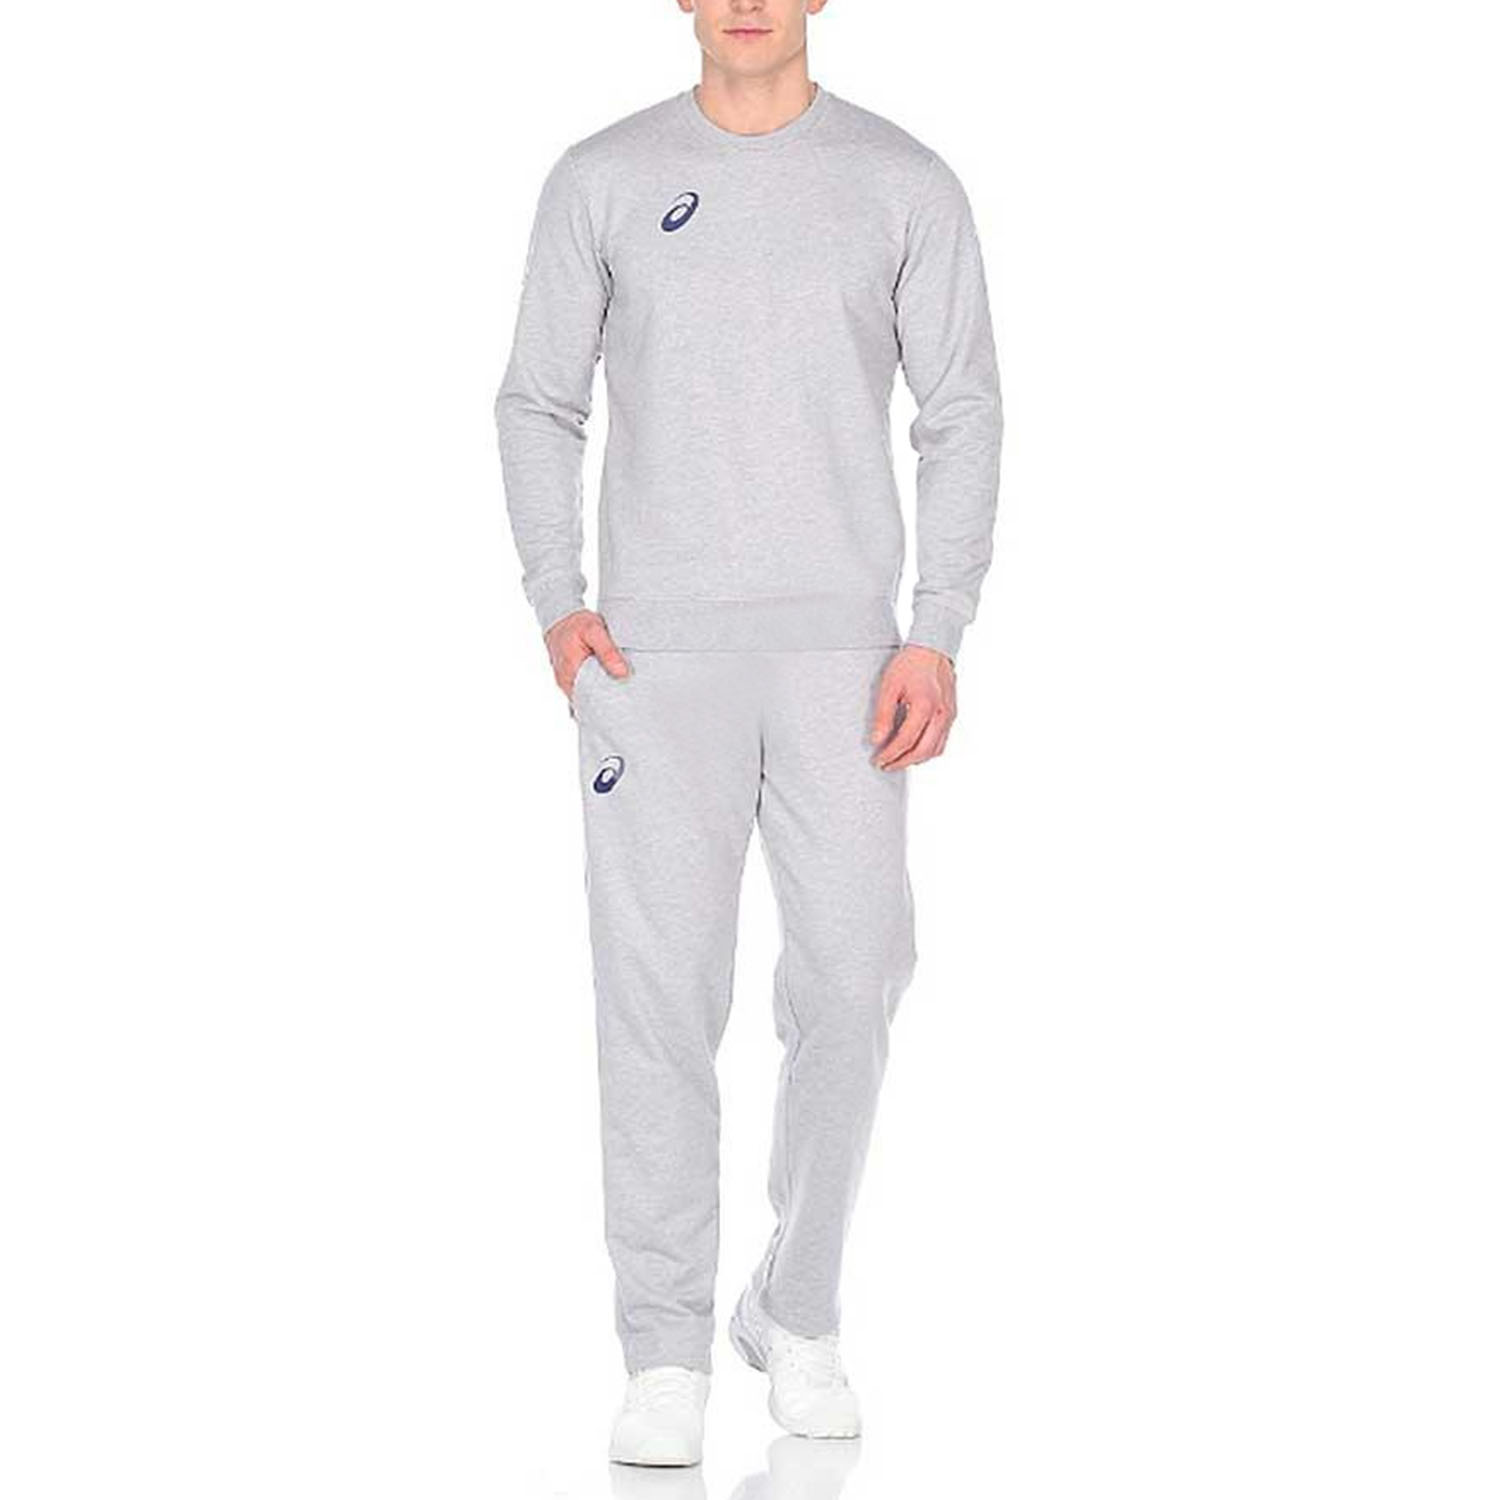 Костюм Asics Man Knit Suit 156855-0714